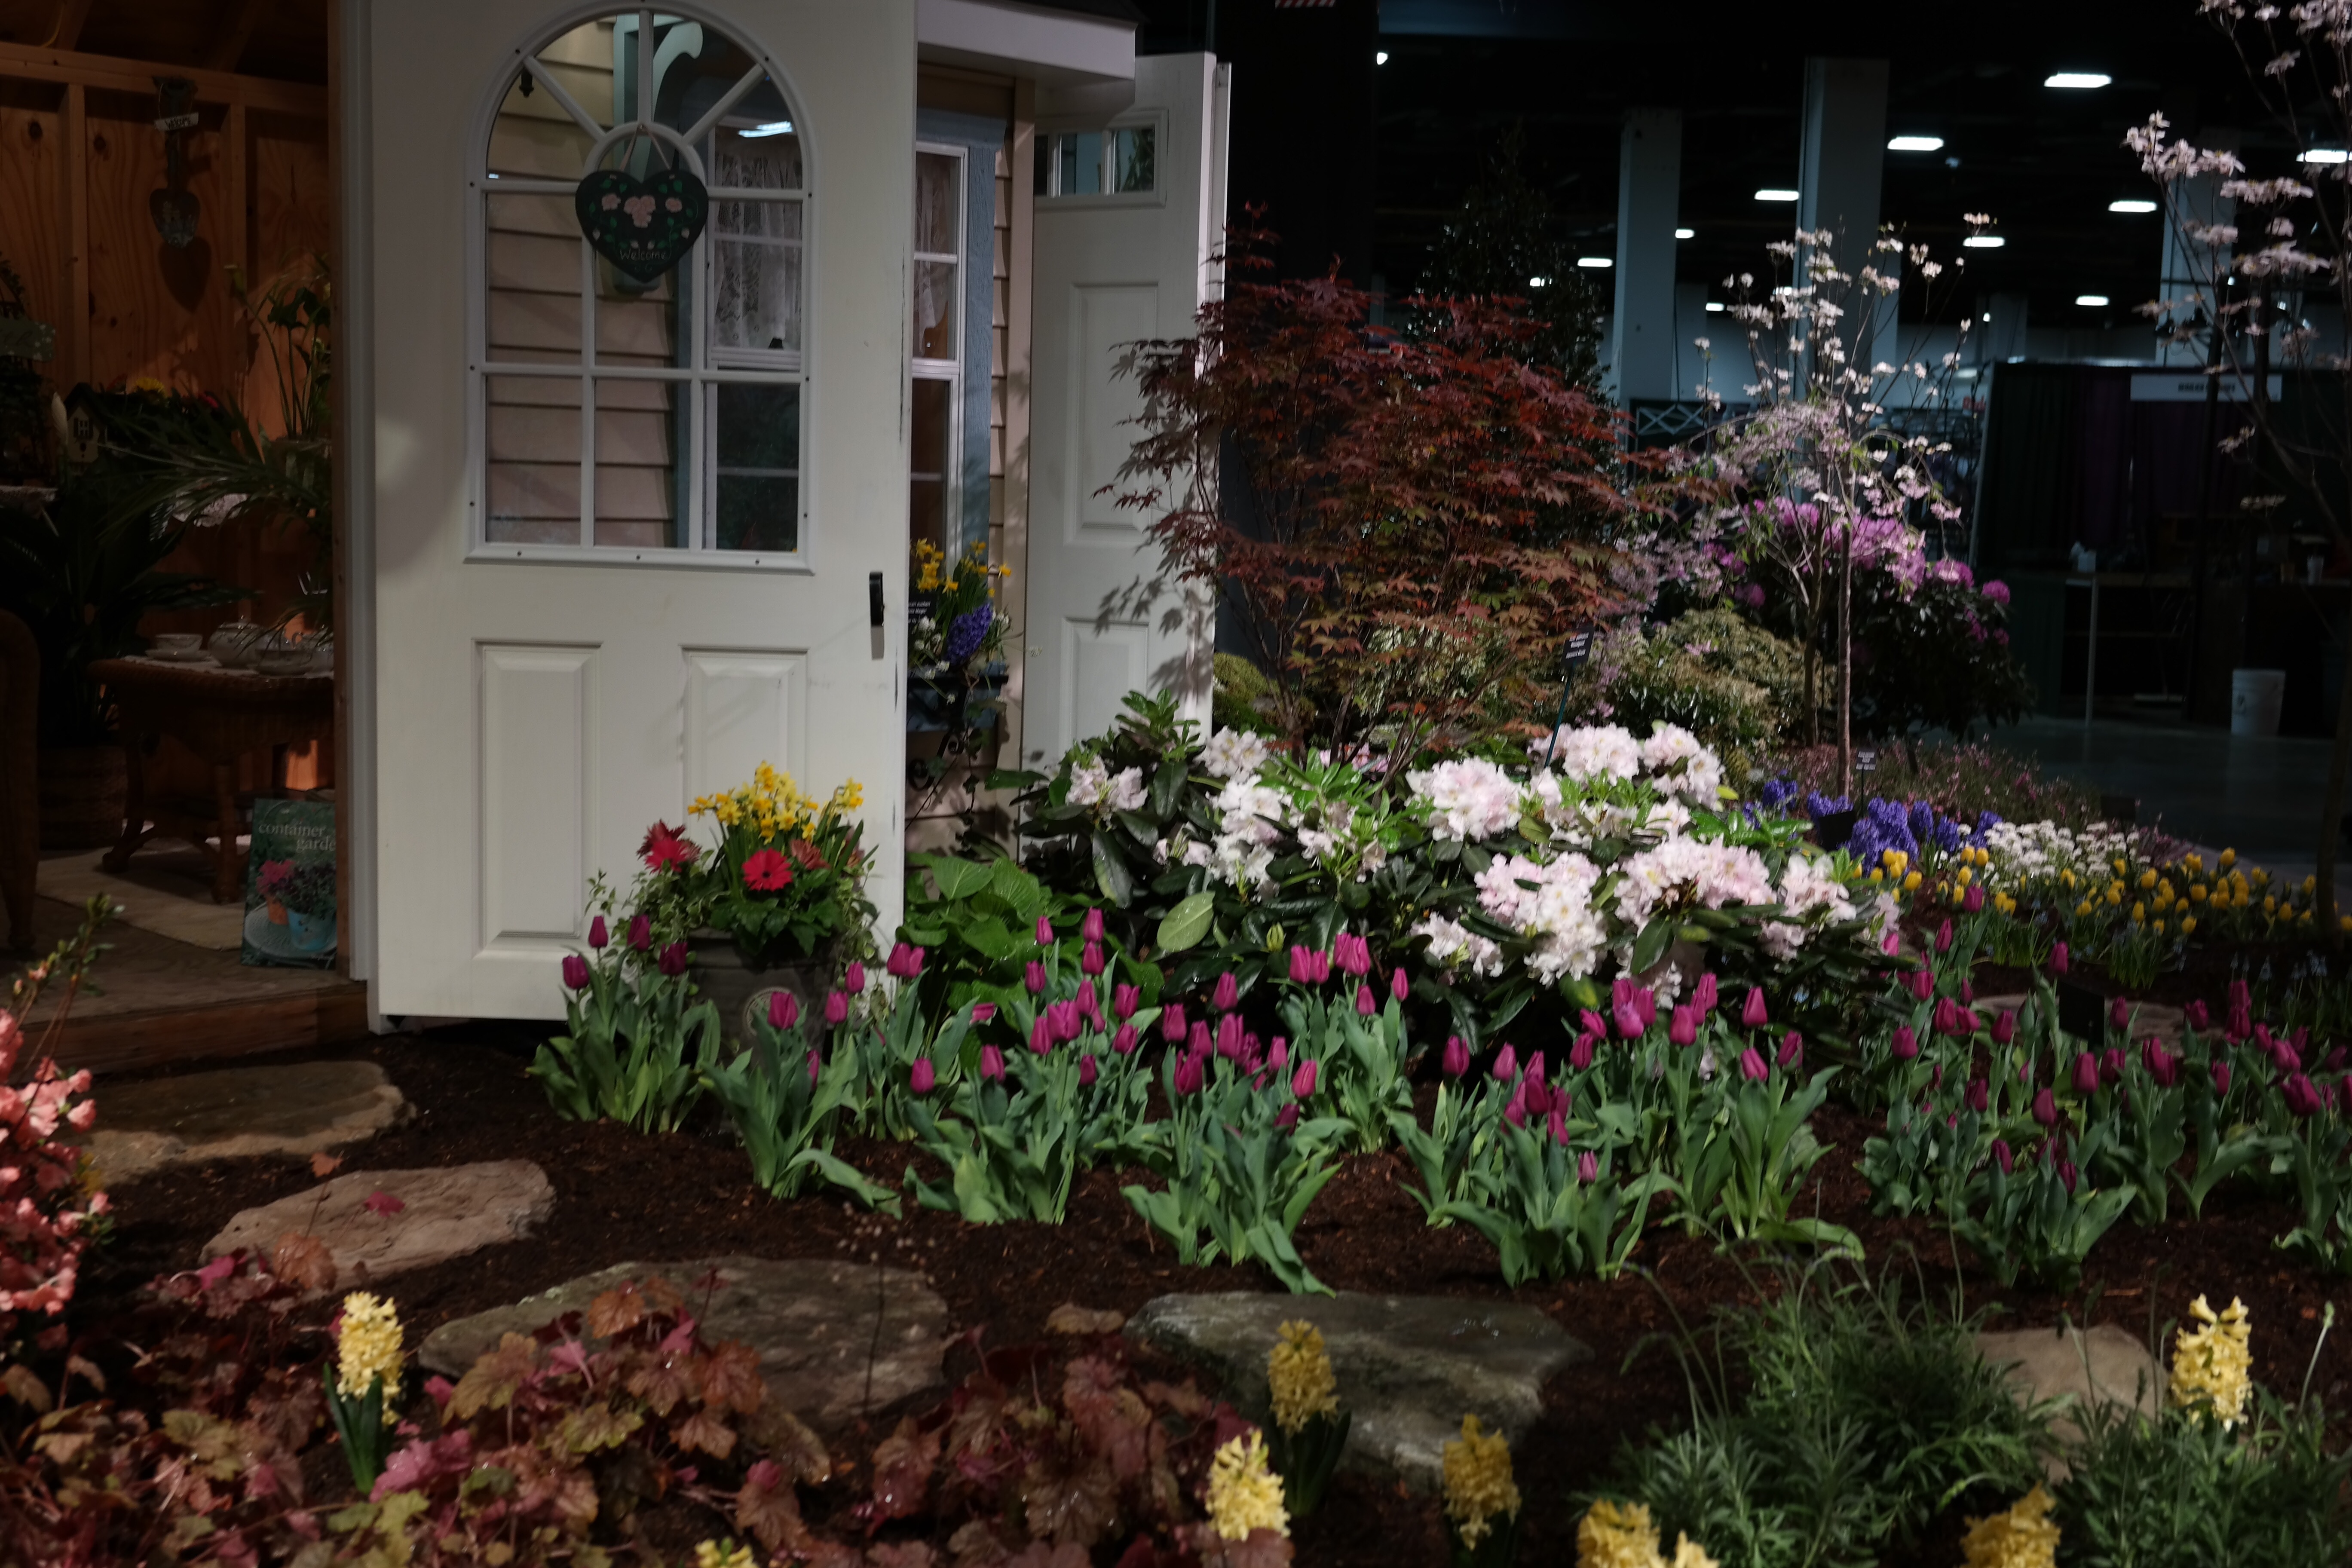 Boston flower garden show nurtured by nature city living boston for Boston flower and garden show 2017